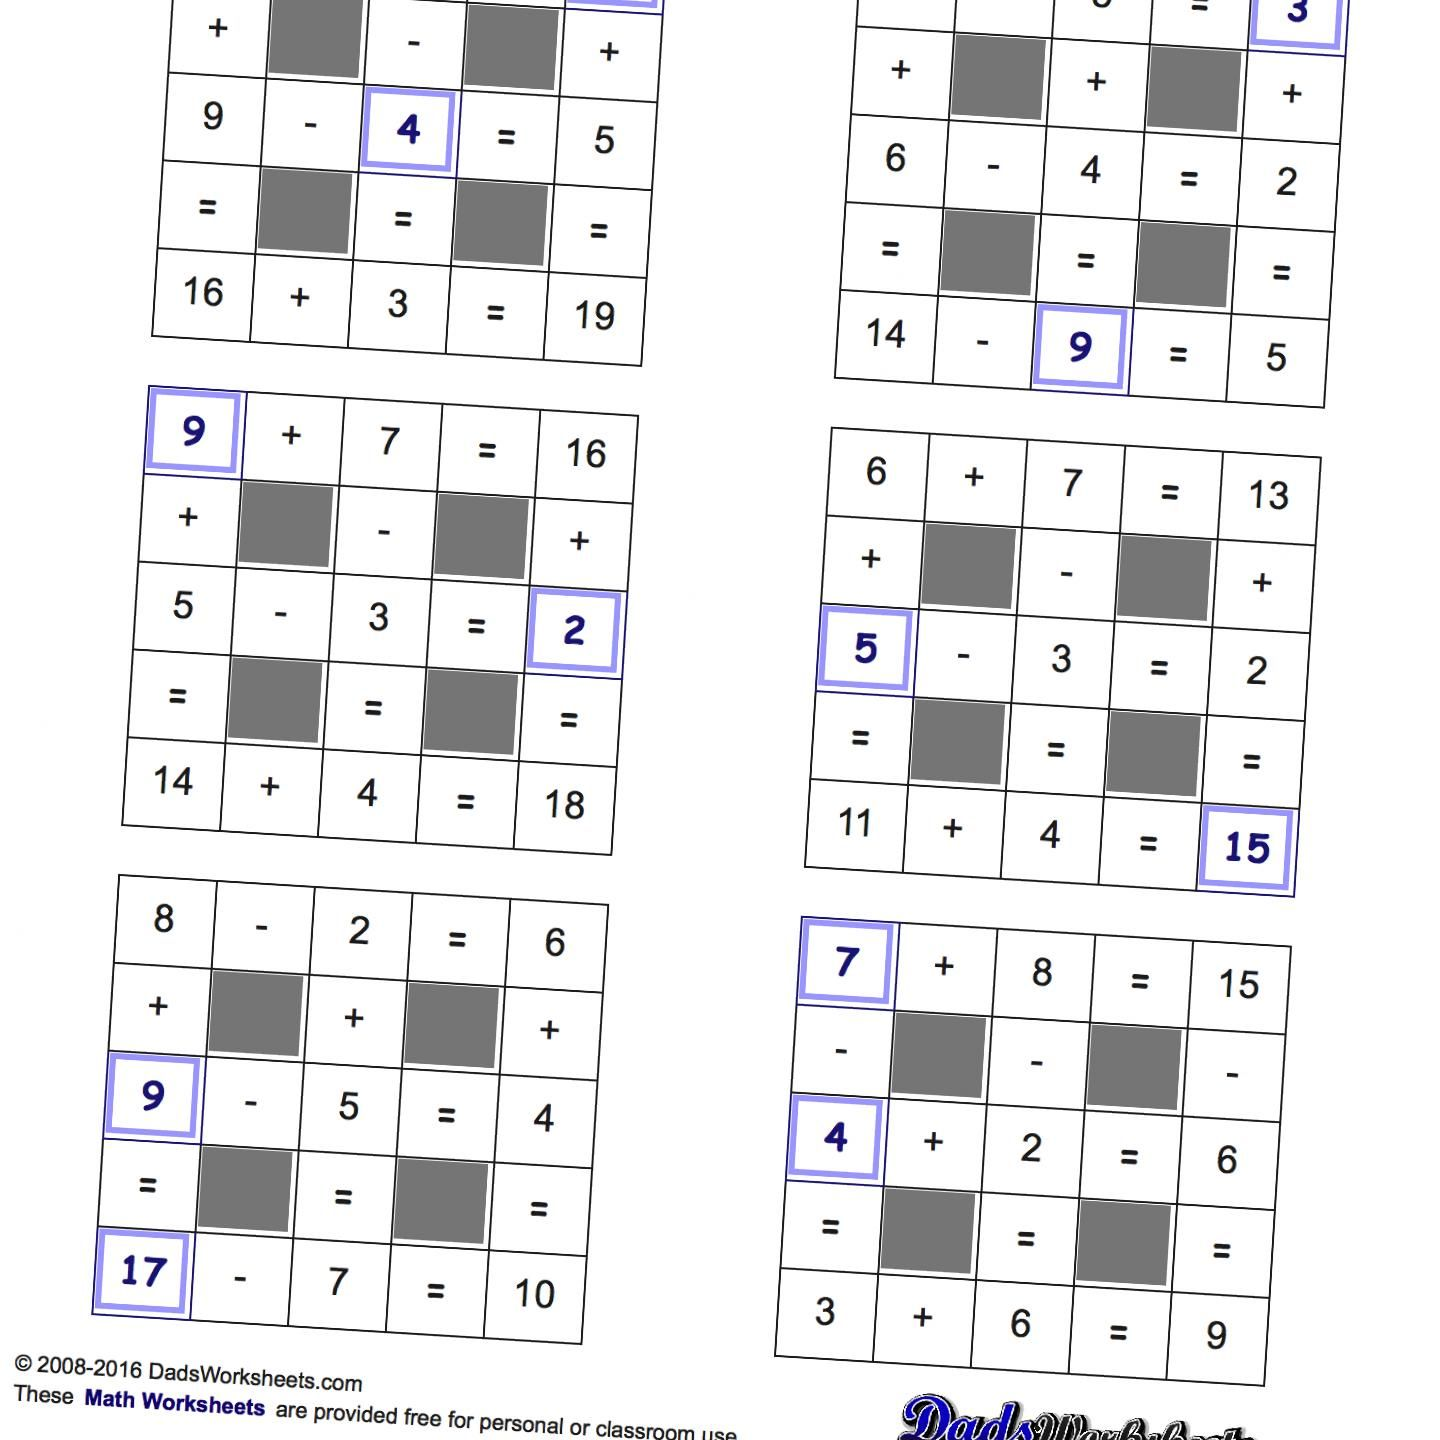 Free Math Worksheets For Number Patterns Problems In Various Formats Visit Sworksheets